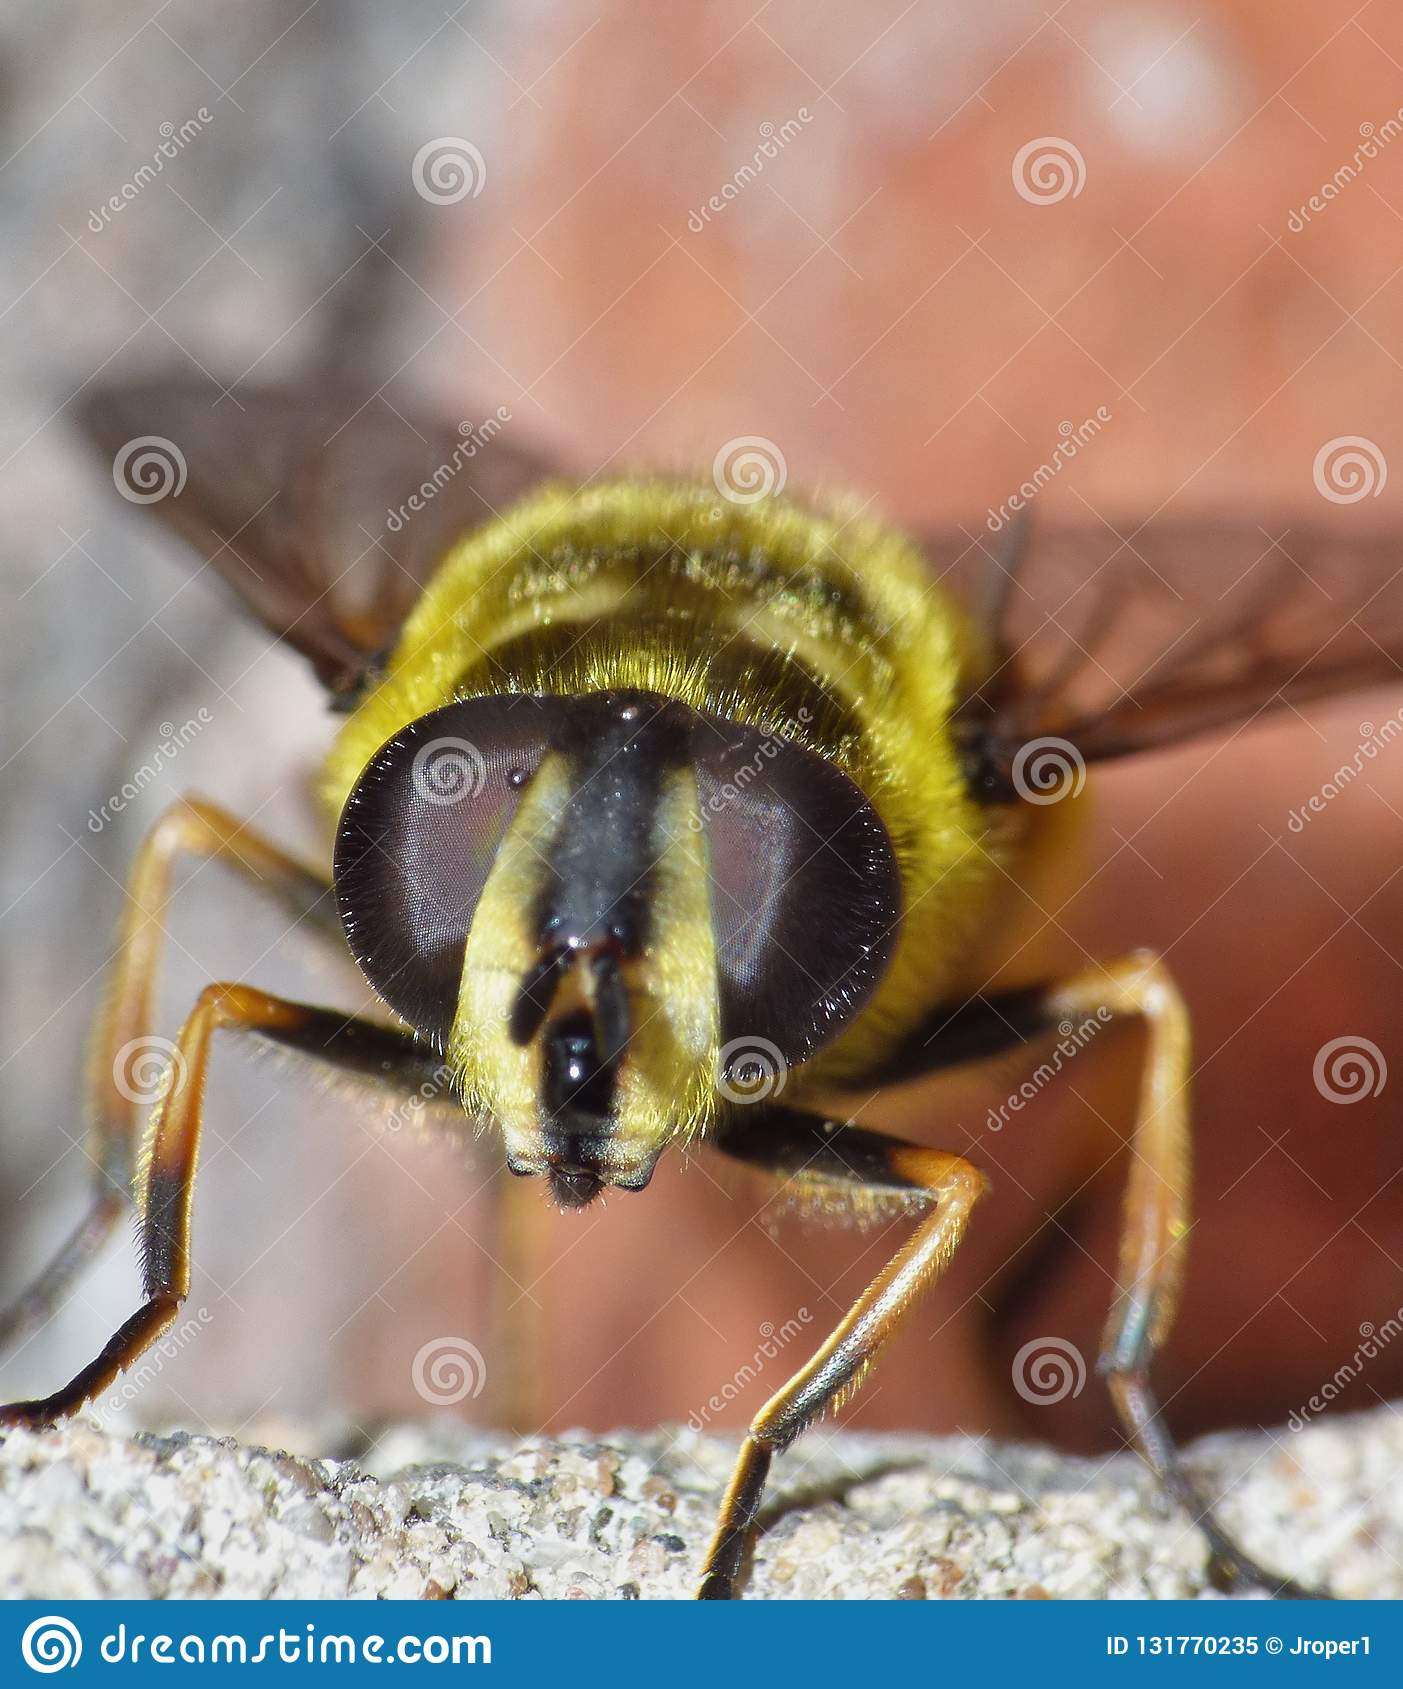 Macro close up of bee, photo taken in the UK